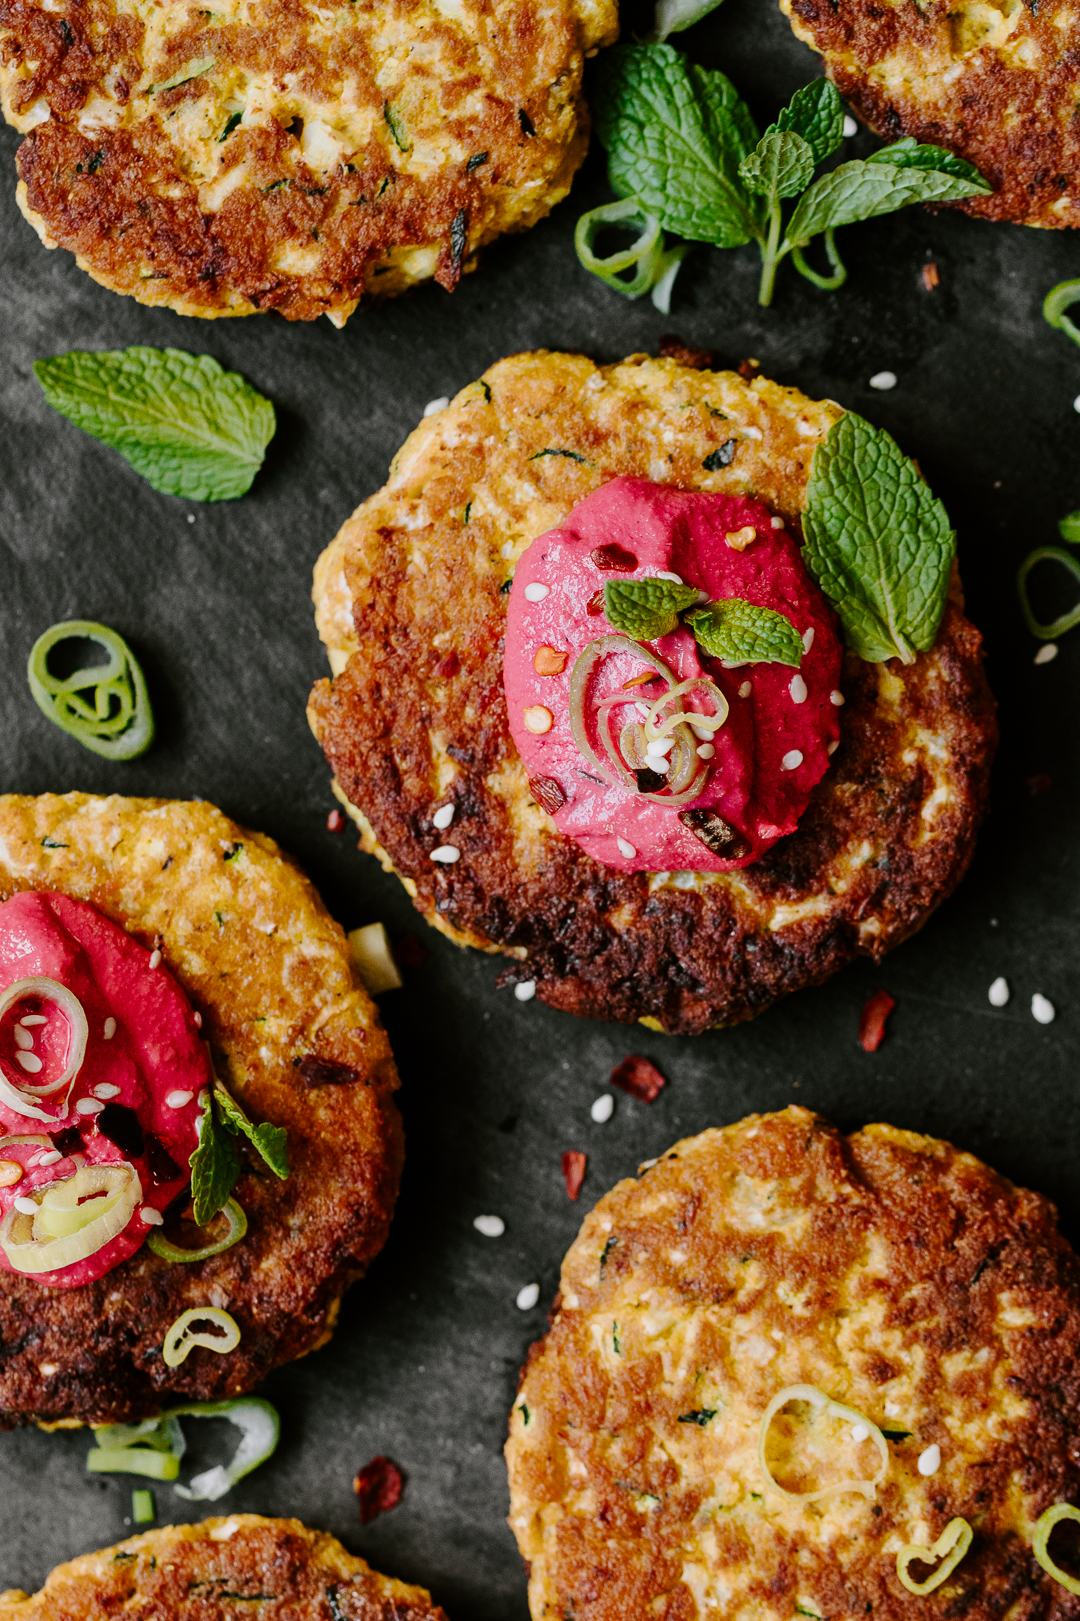 Low_Carb_Cauliflower_and_Zucchini_Fritters_by_Jordan_Pie_Nutritionist_Photographer-1.jpg